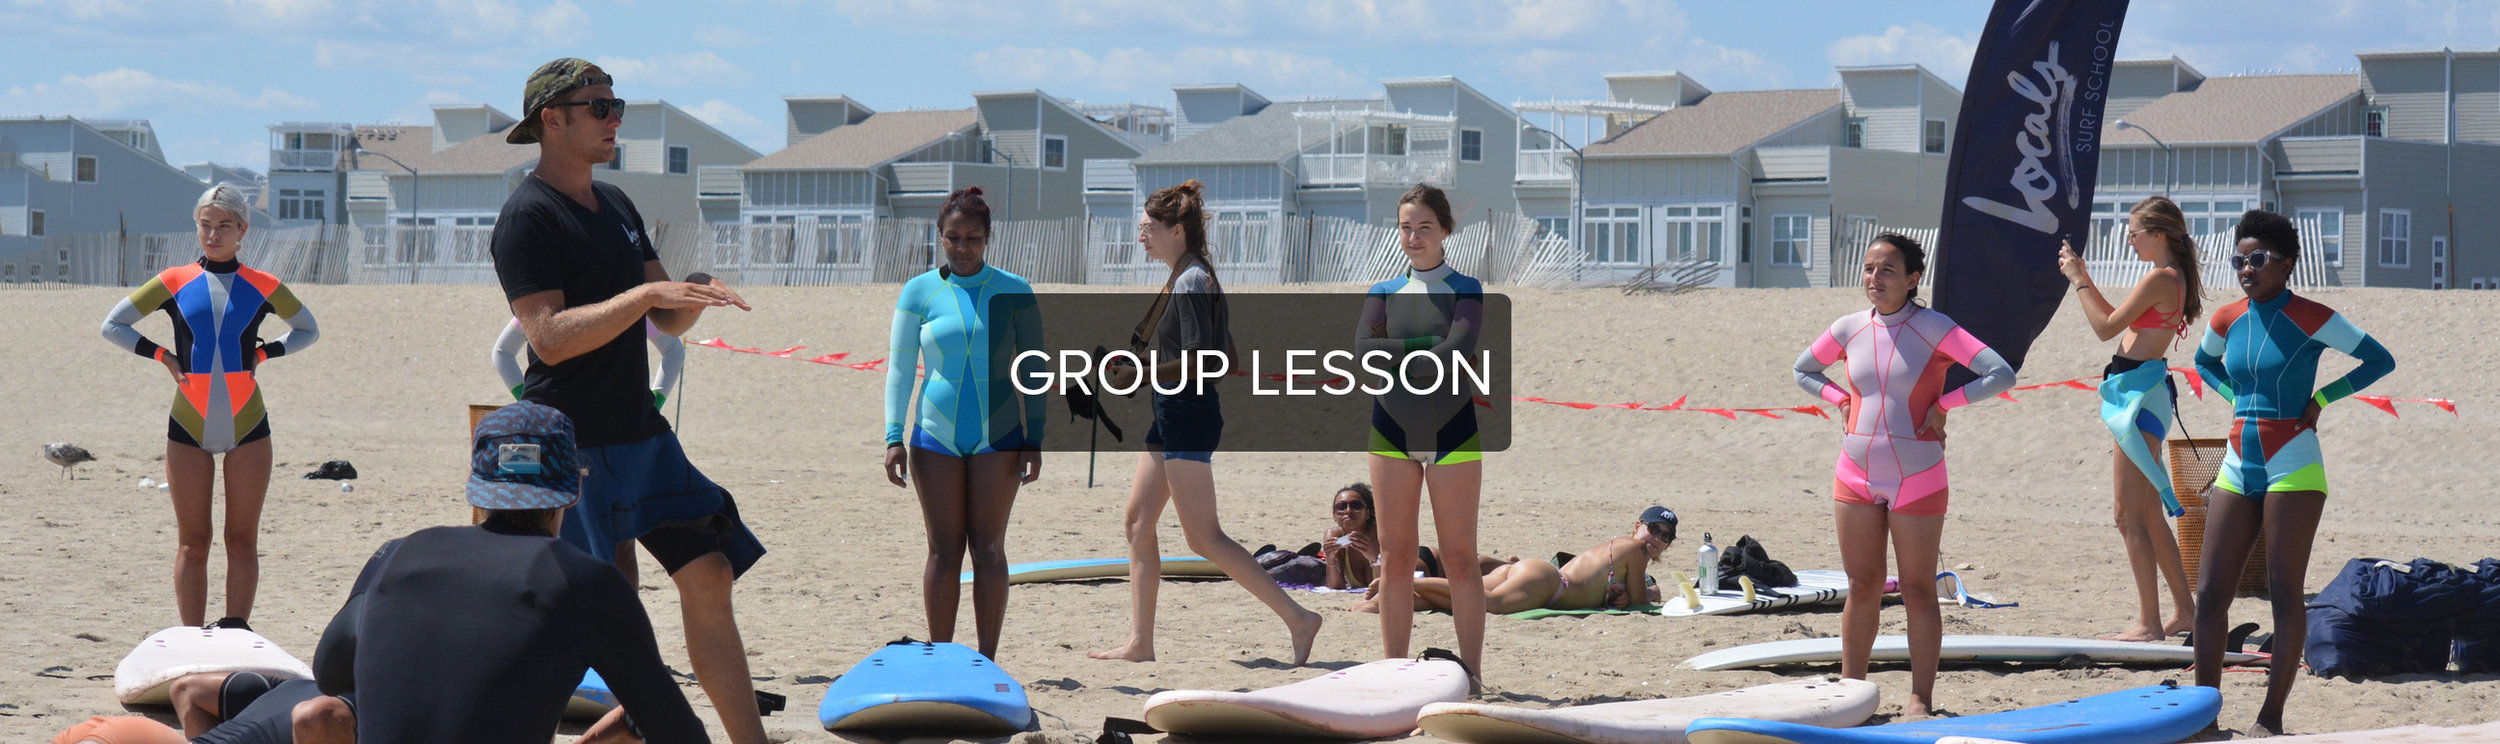 Group Lessons Slider 2018 2.jpg